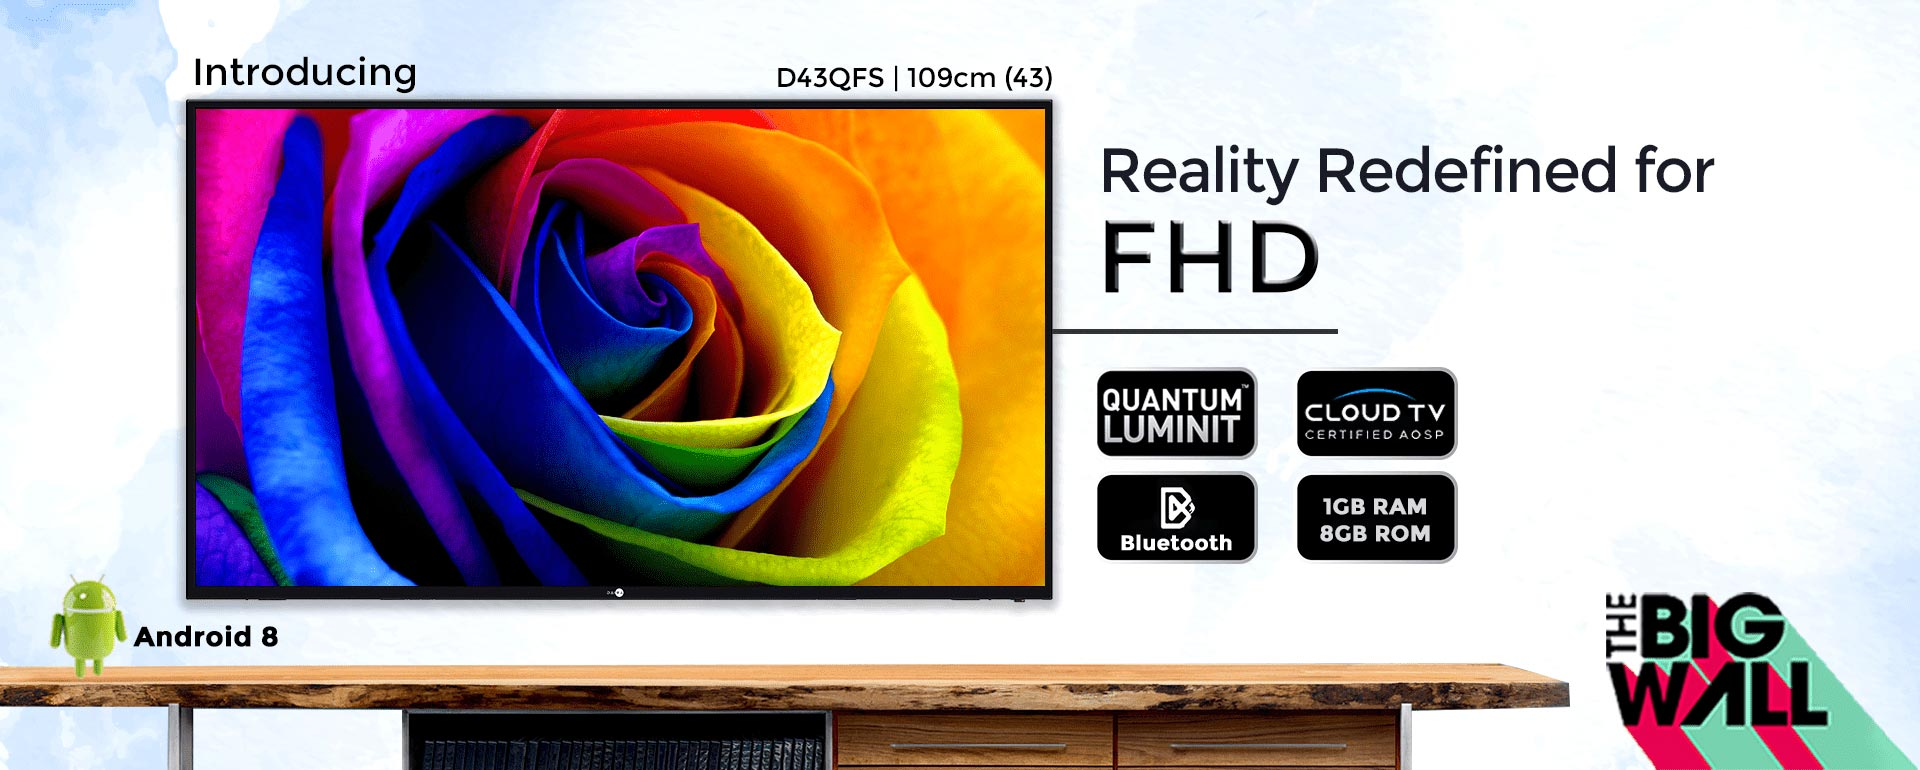 D43QFS - 43 Inch Full HD Smart LED TV